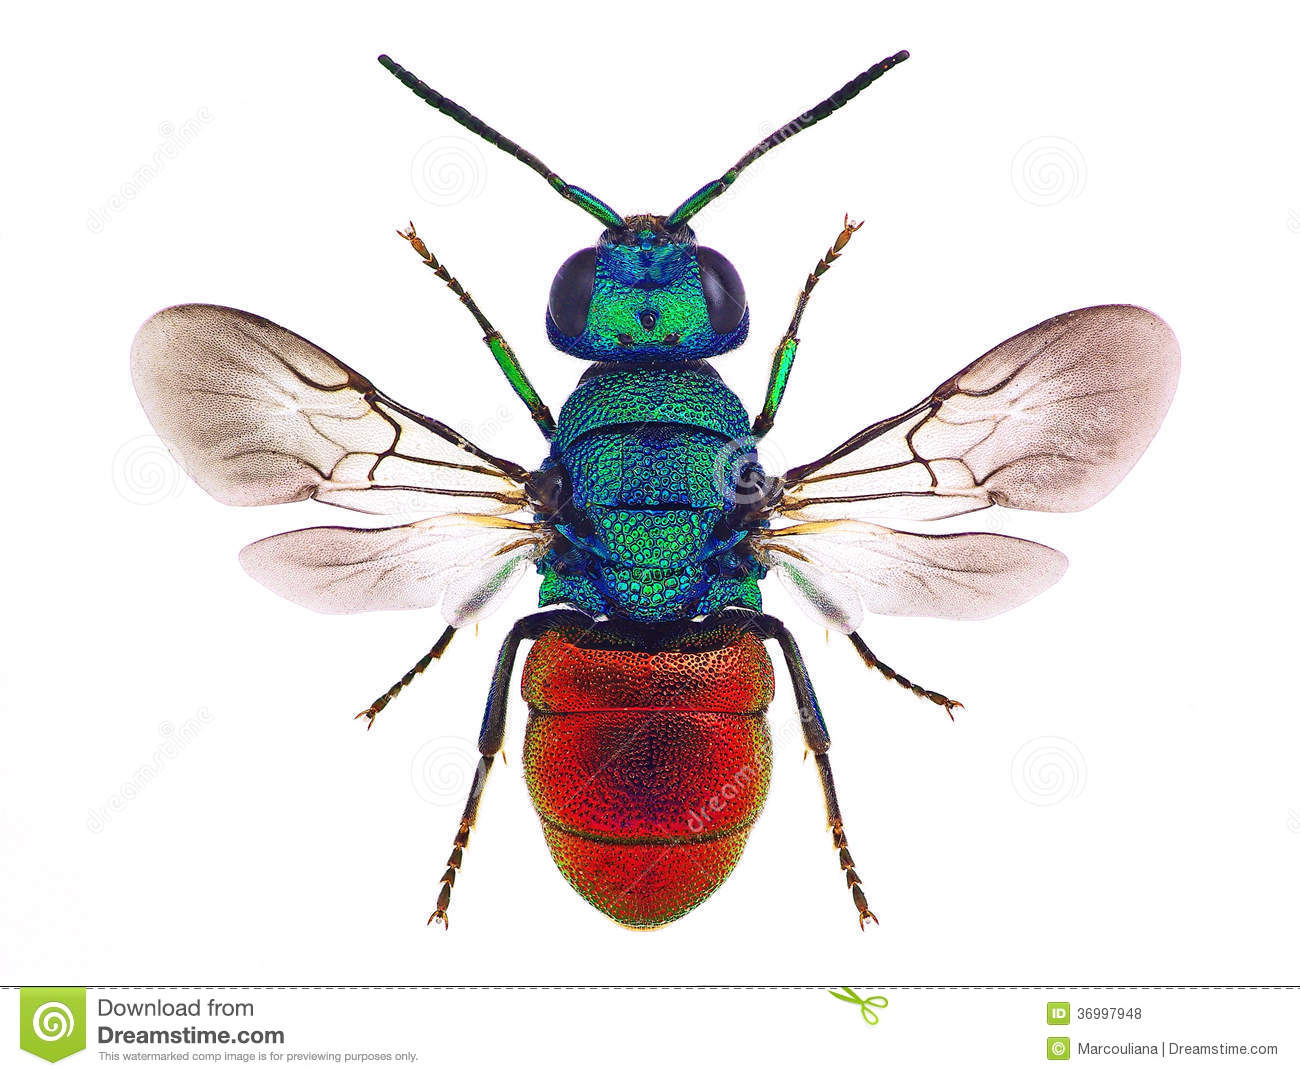 Cuckoo Wasp clipart #20, Download drawings